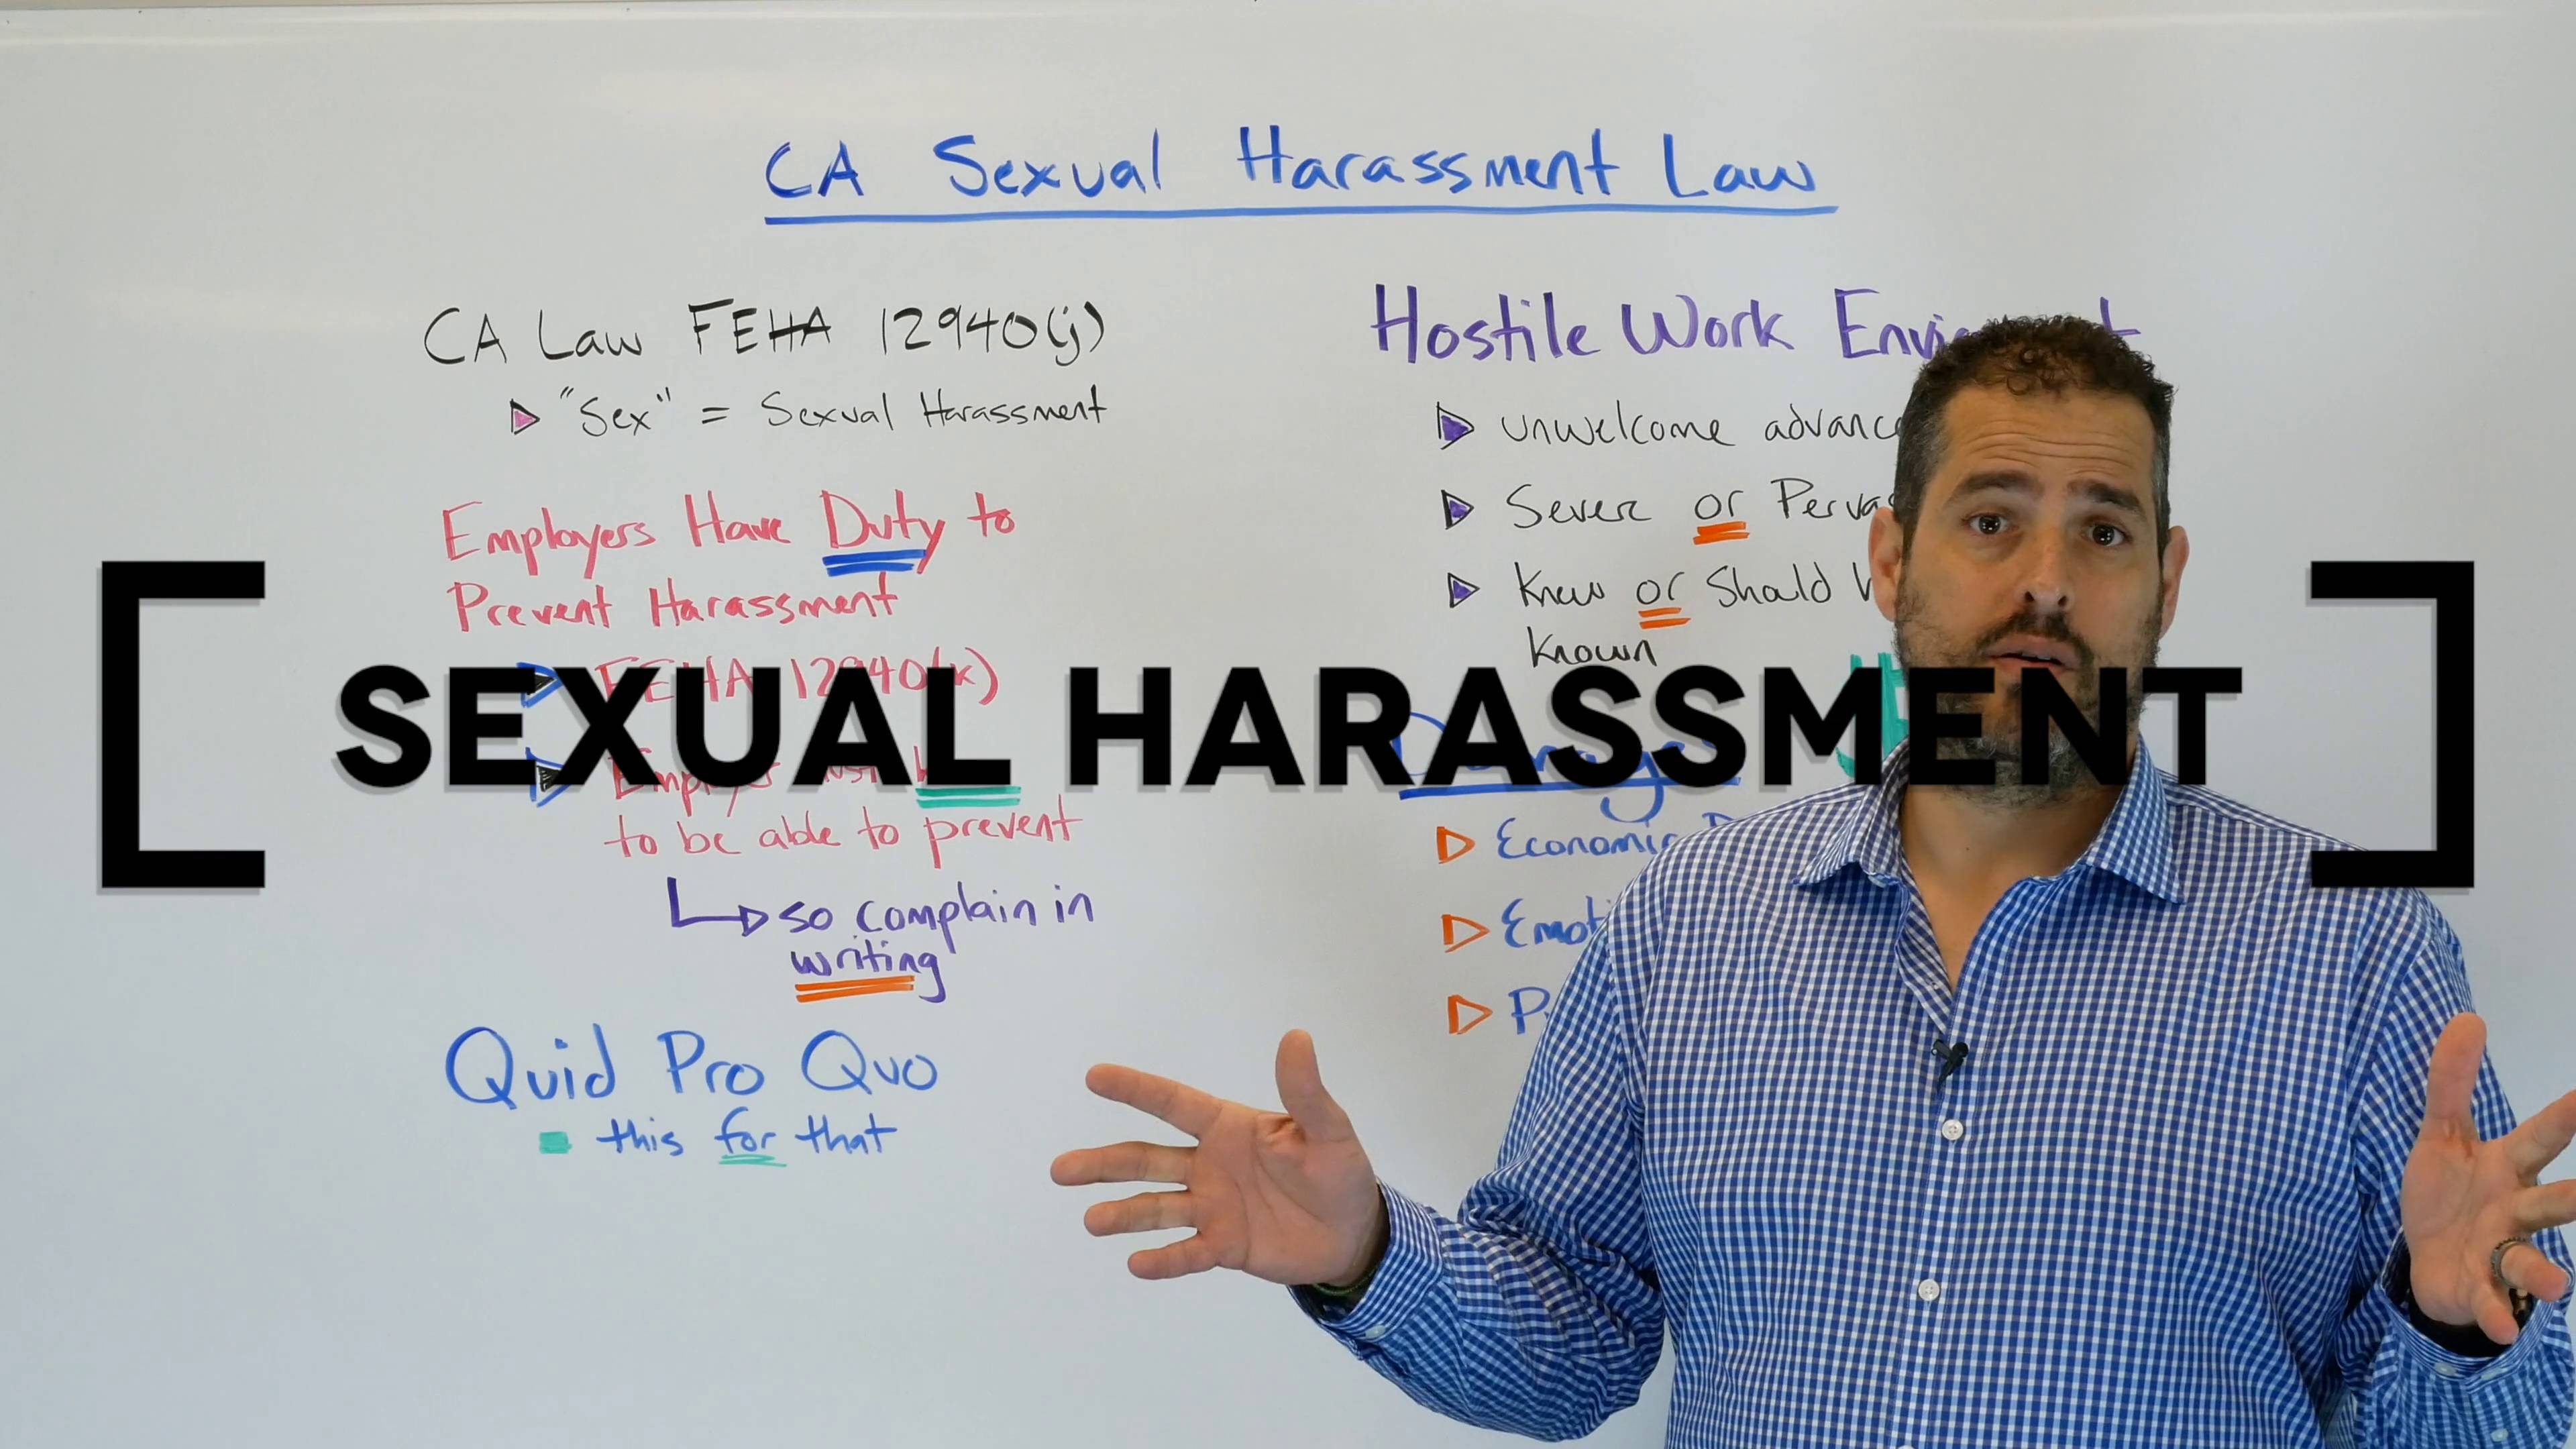 Images of sexual favors for promotions